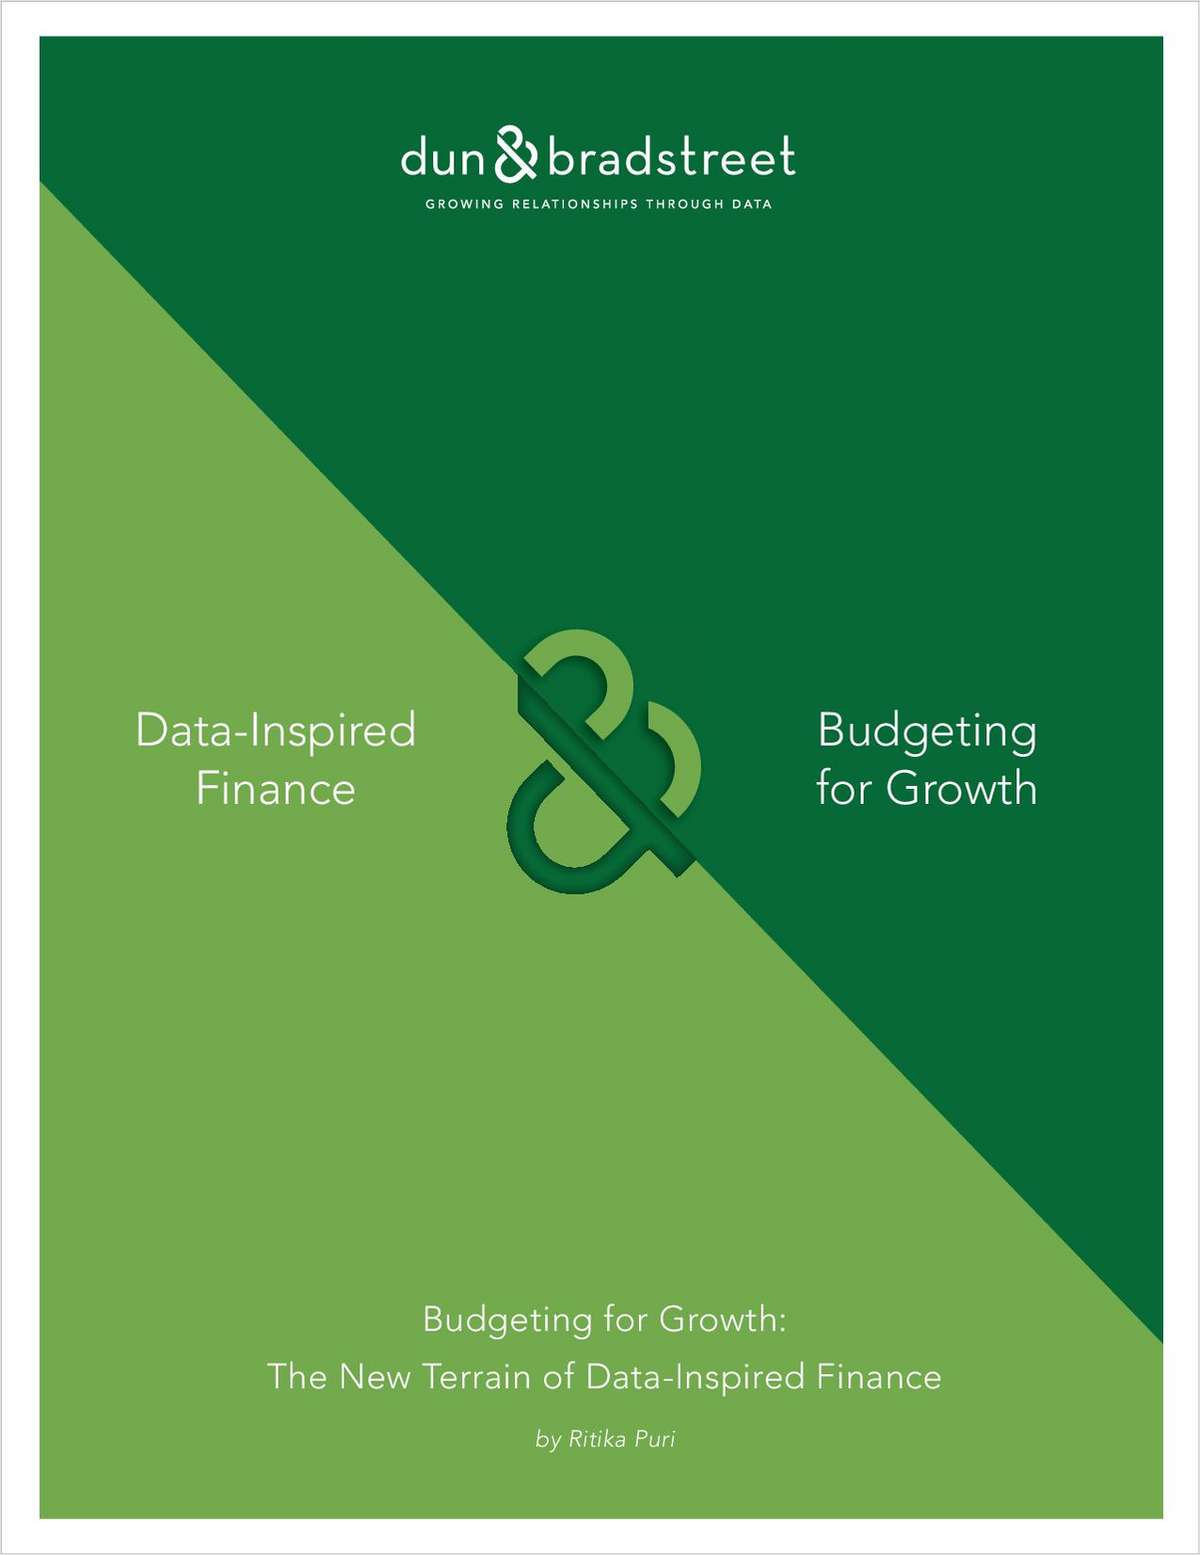 Budgeting for Growth: The New Terrain of Data-Inspired Finance